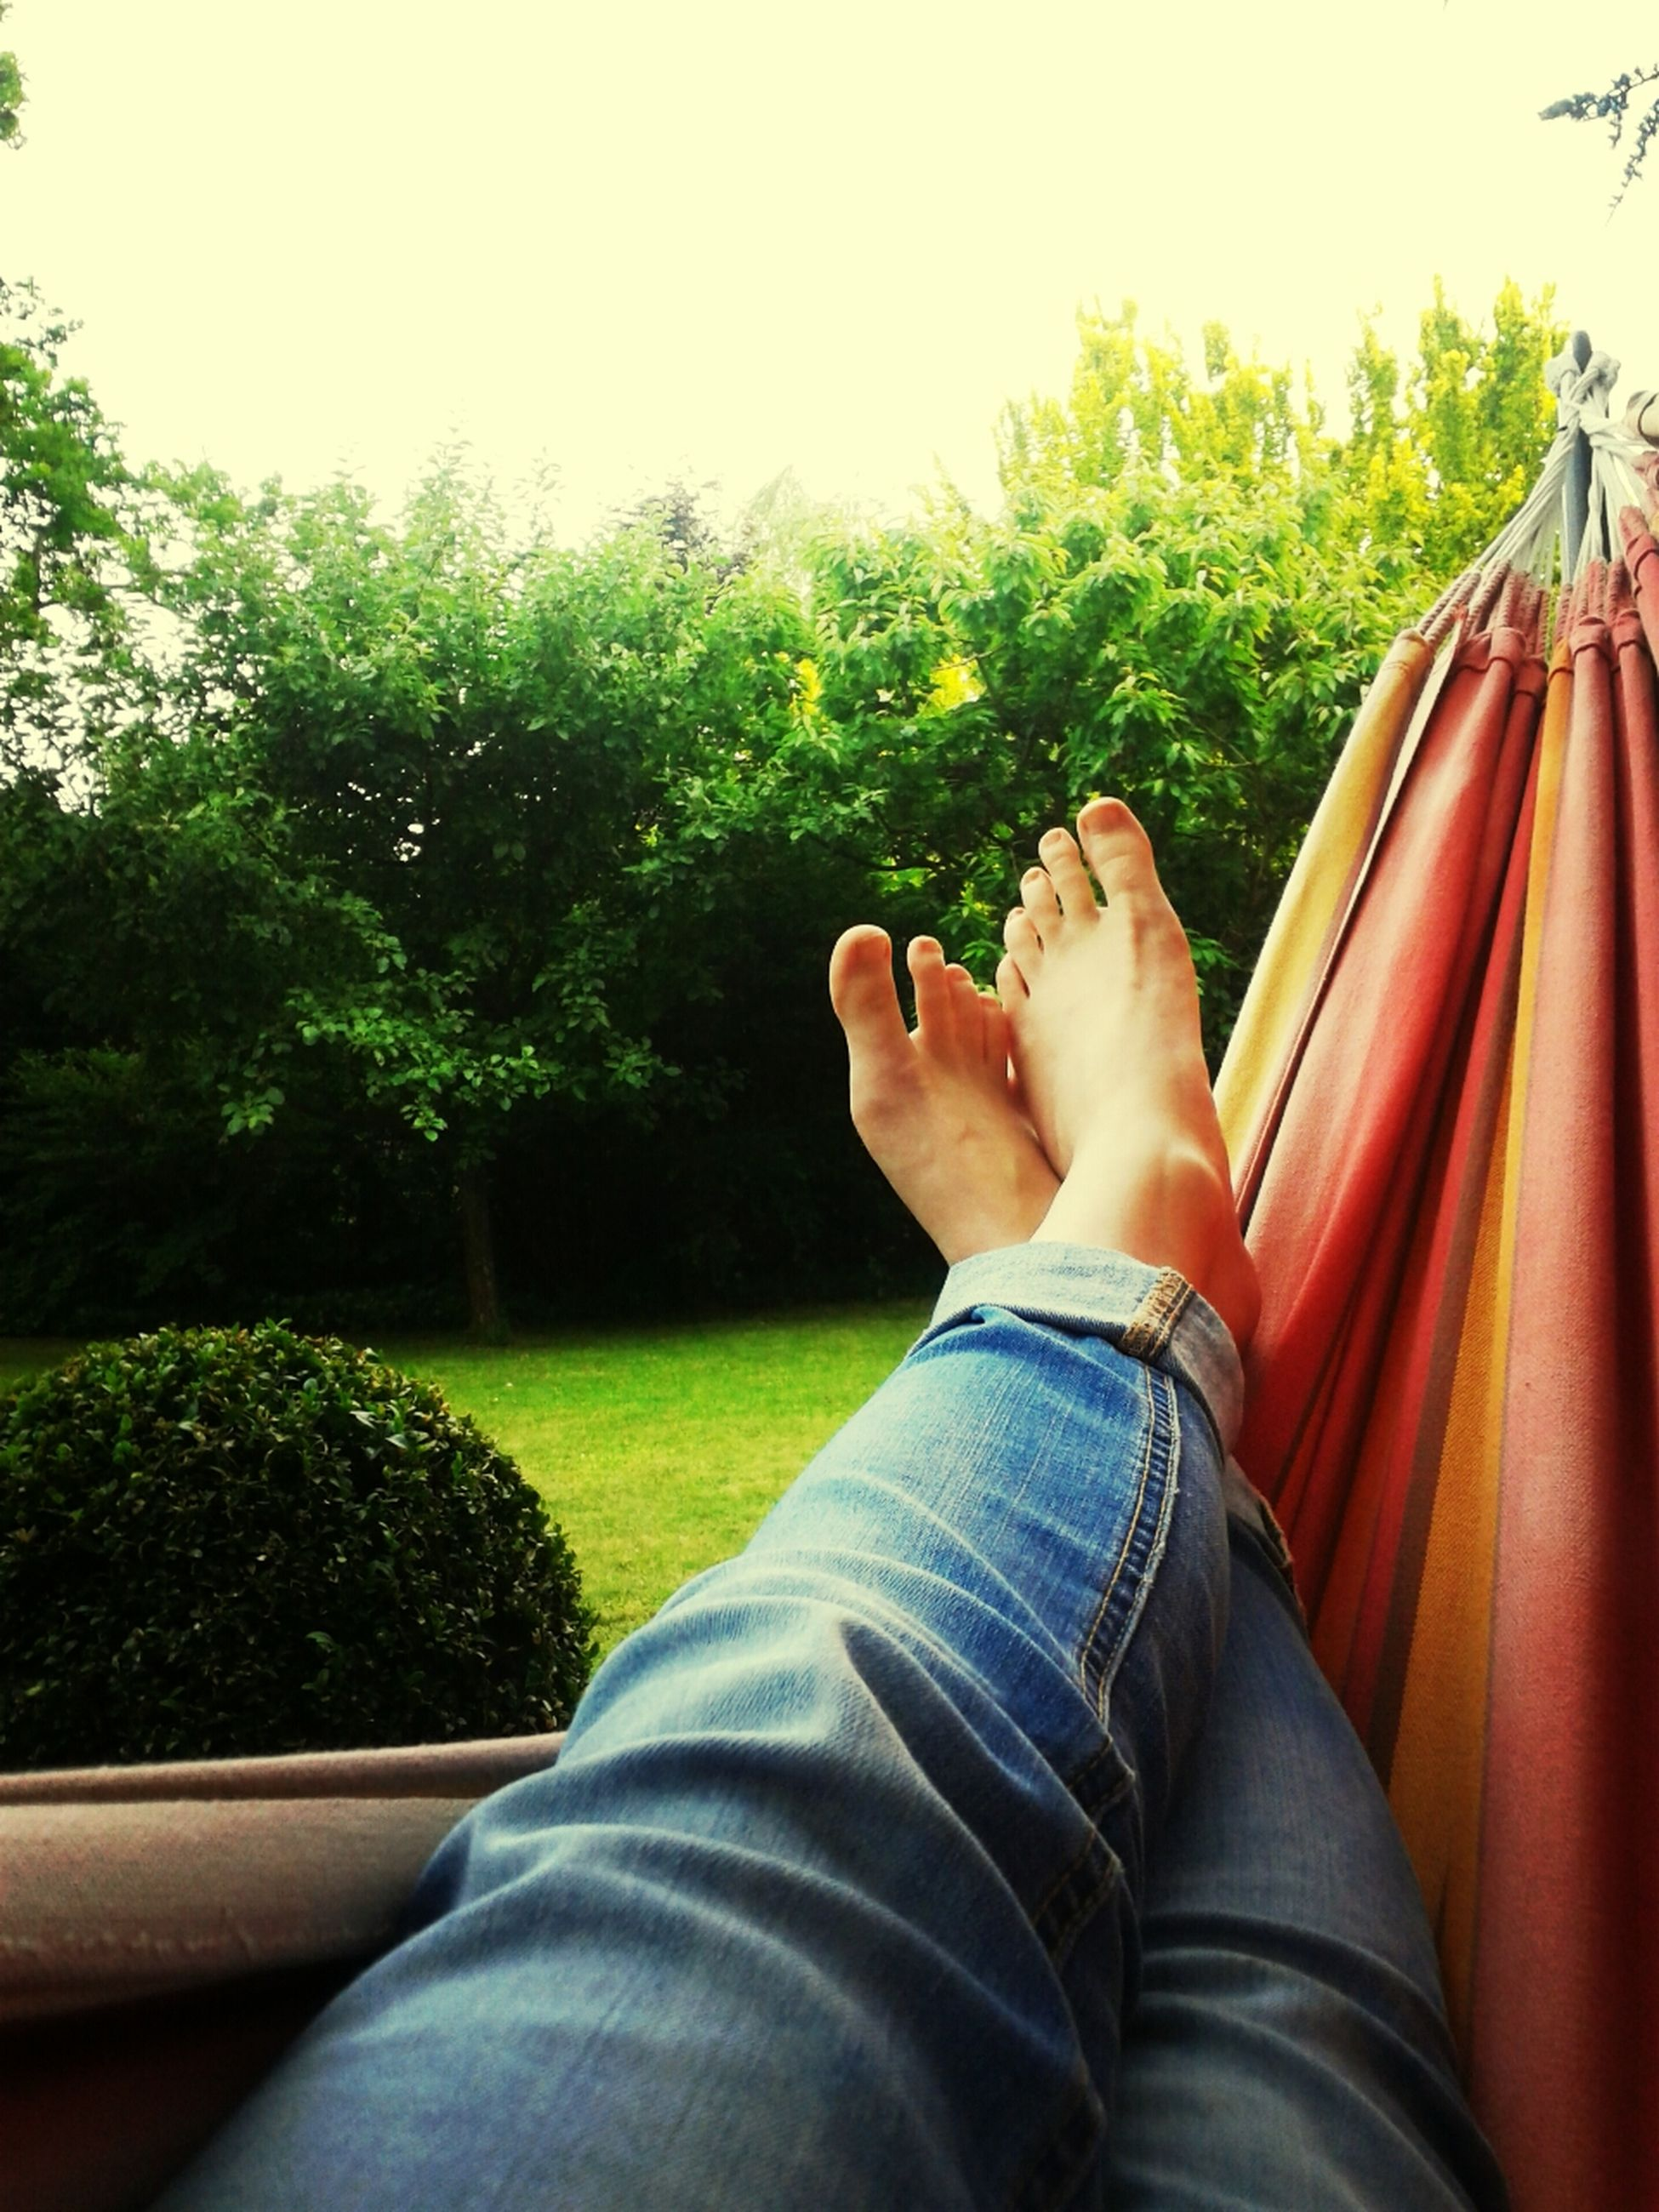 low section, person, personal perspective, relaxation, lifestyles, tree, legs crossed at ankle, leisure activity, sitting, resting, jeans, relaxing, green color, barefoot, human foot, growth, plant